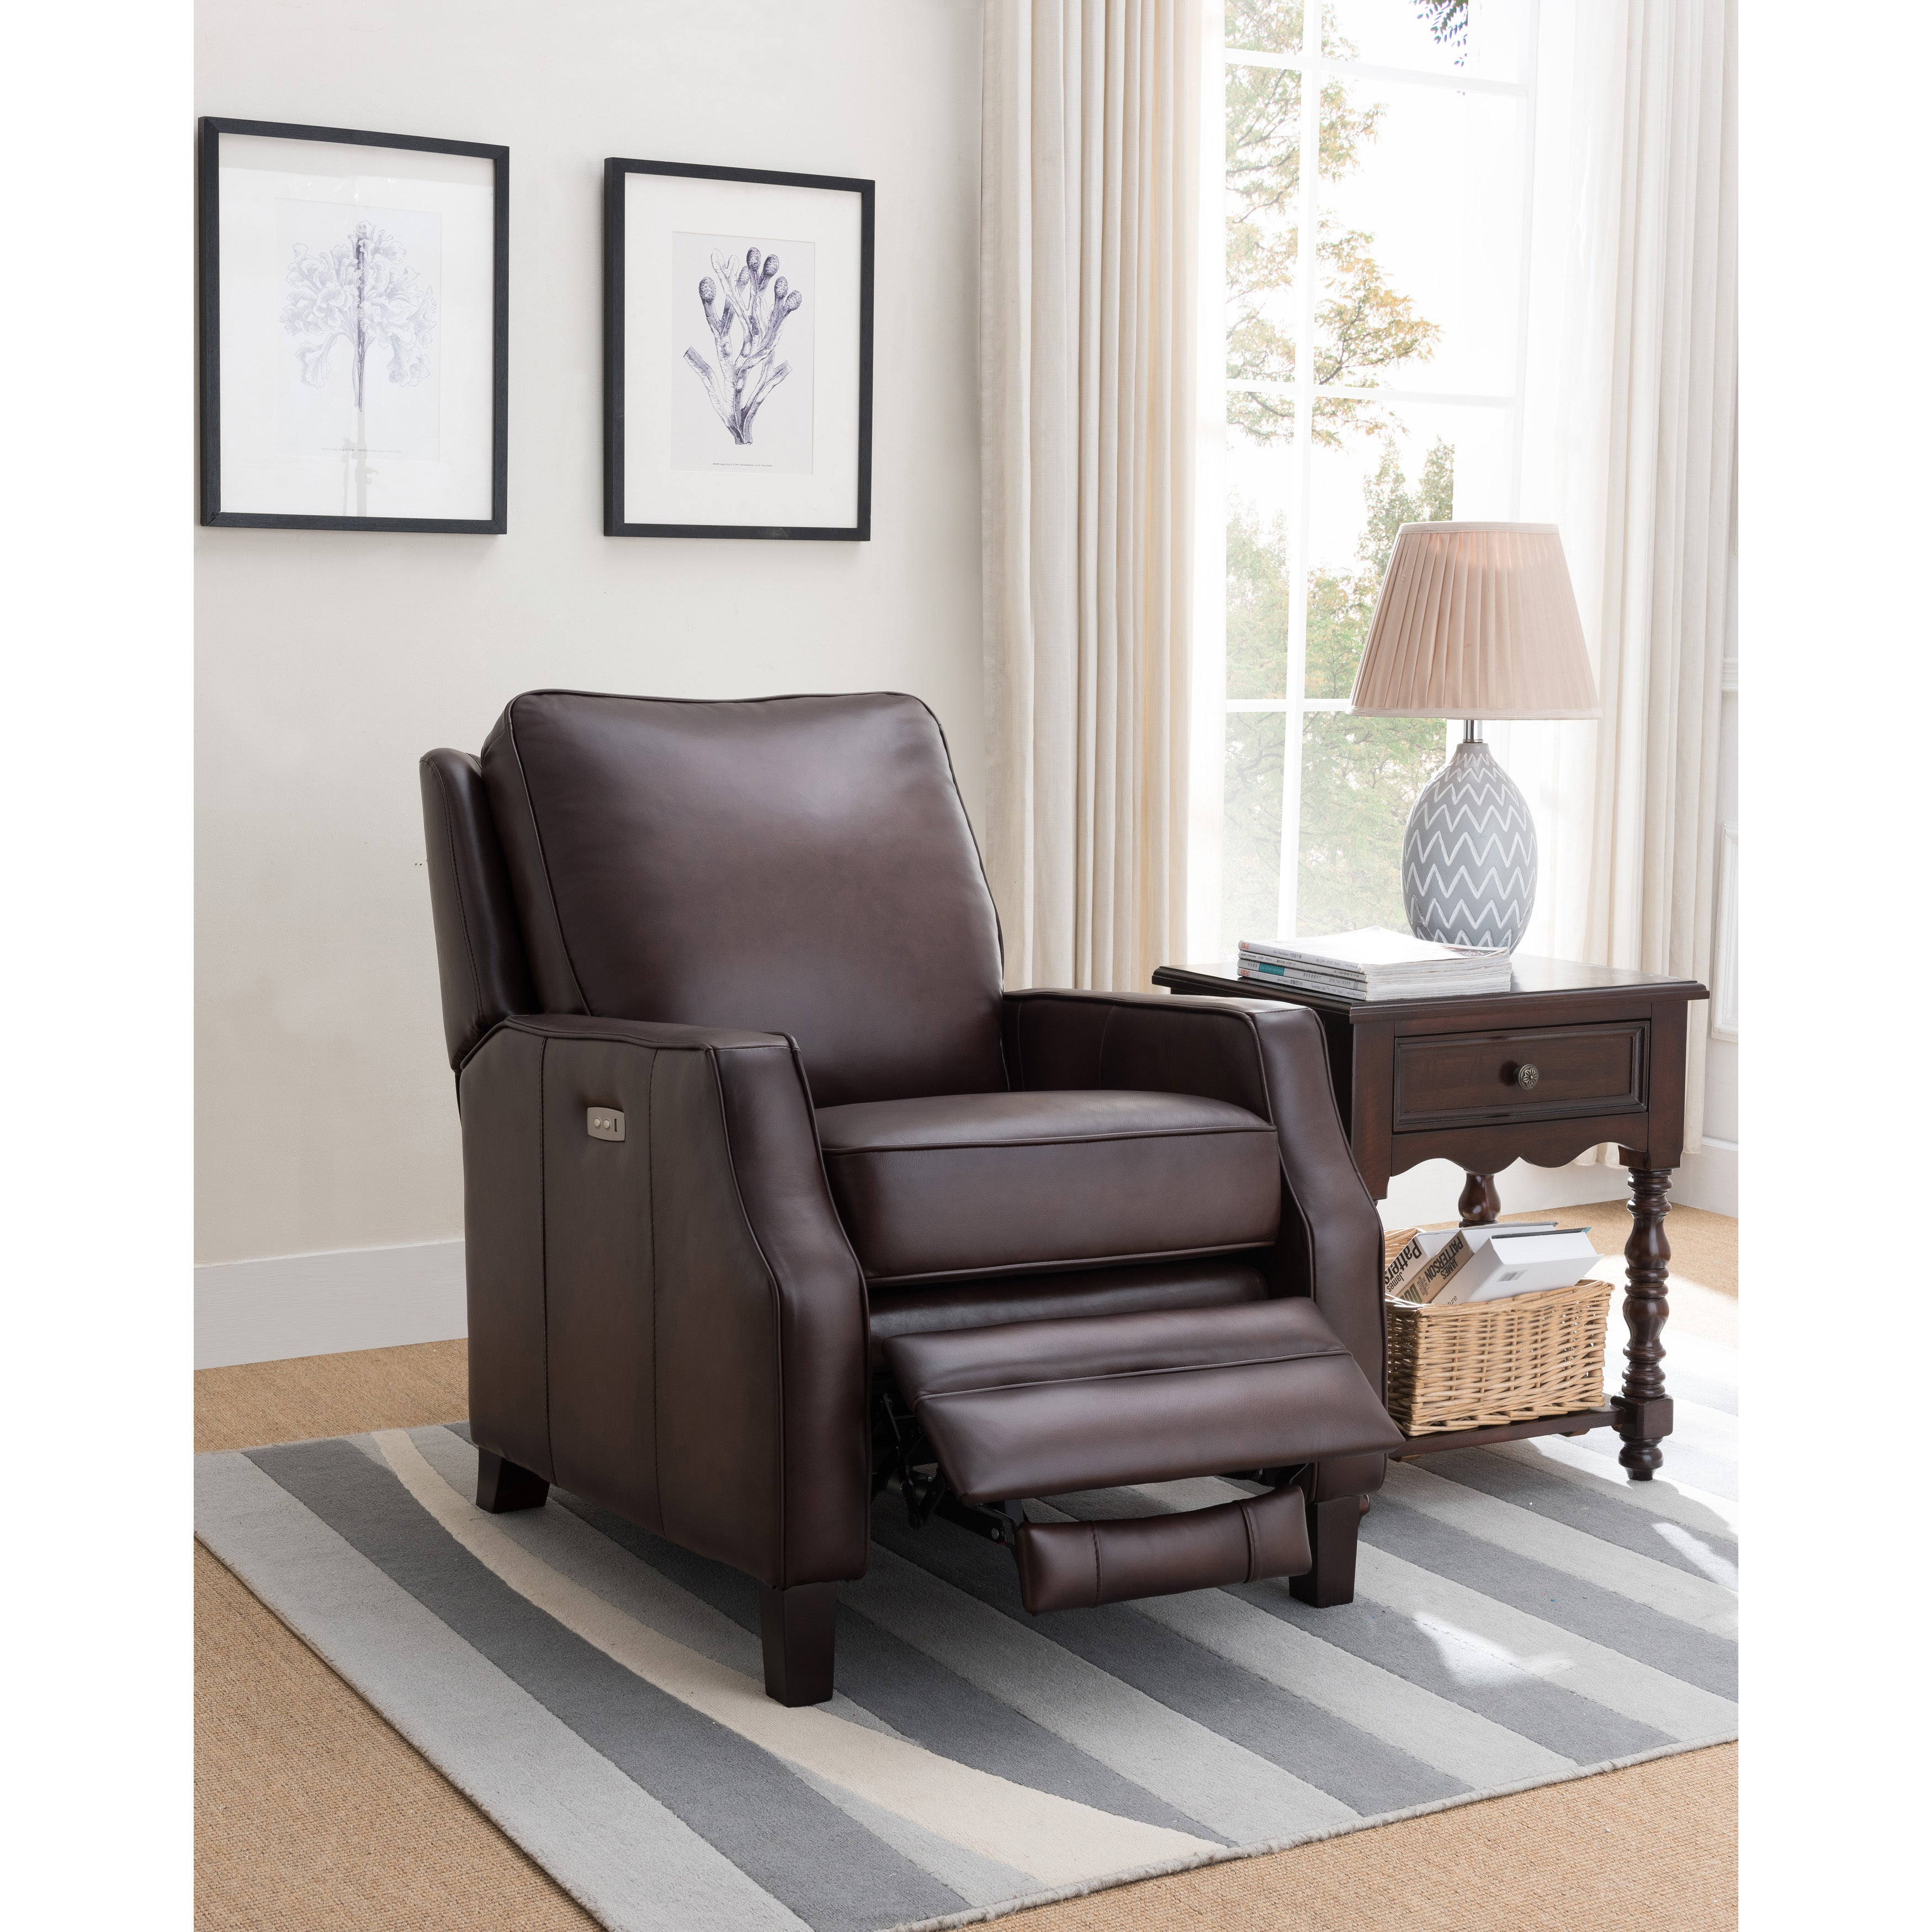 Shop Cary Brown Premium Top Grain Leather Power Recliner Chair